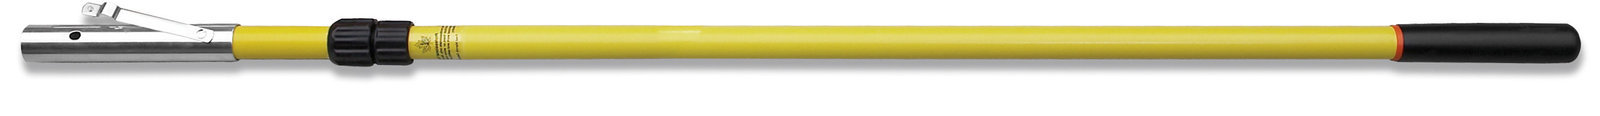 Fred Marvin Fiberglass Telescopic Pole